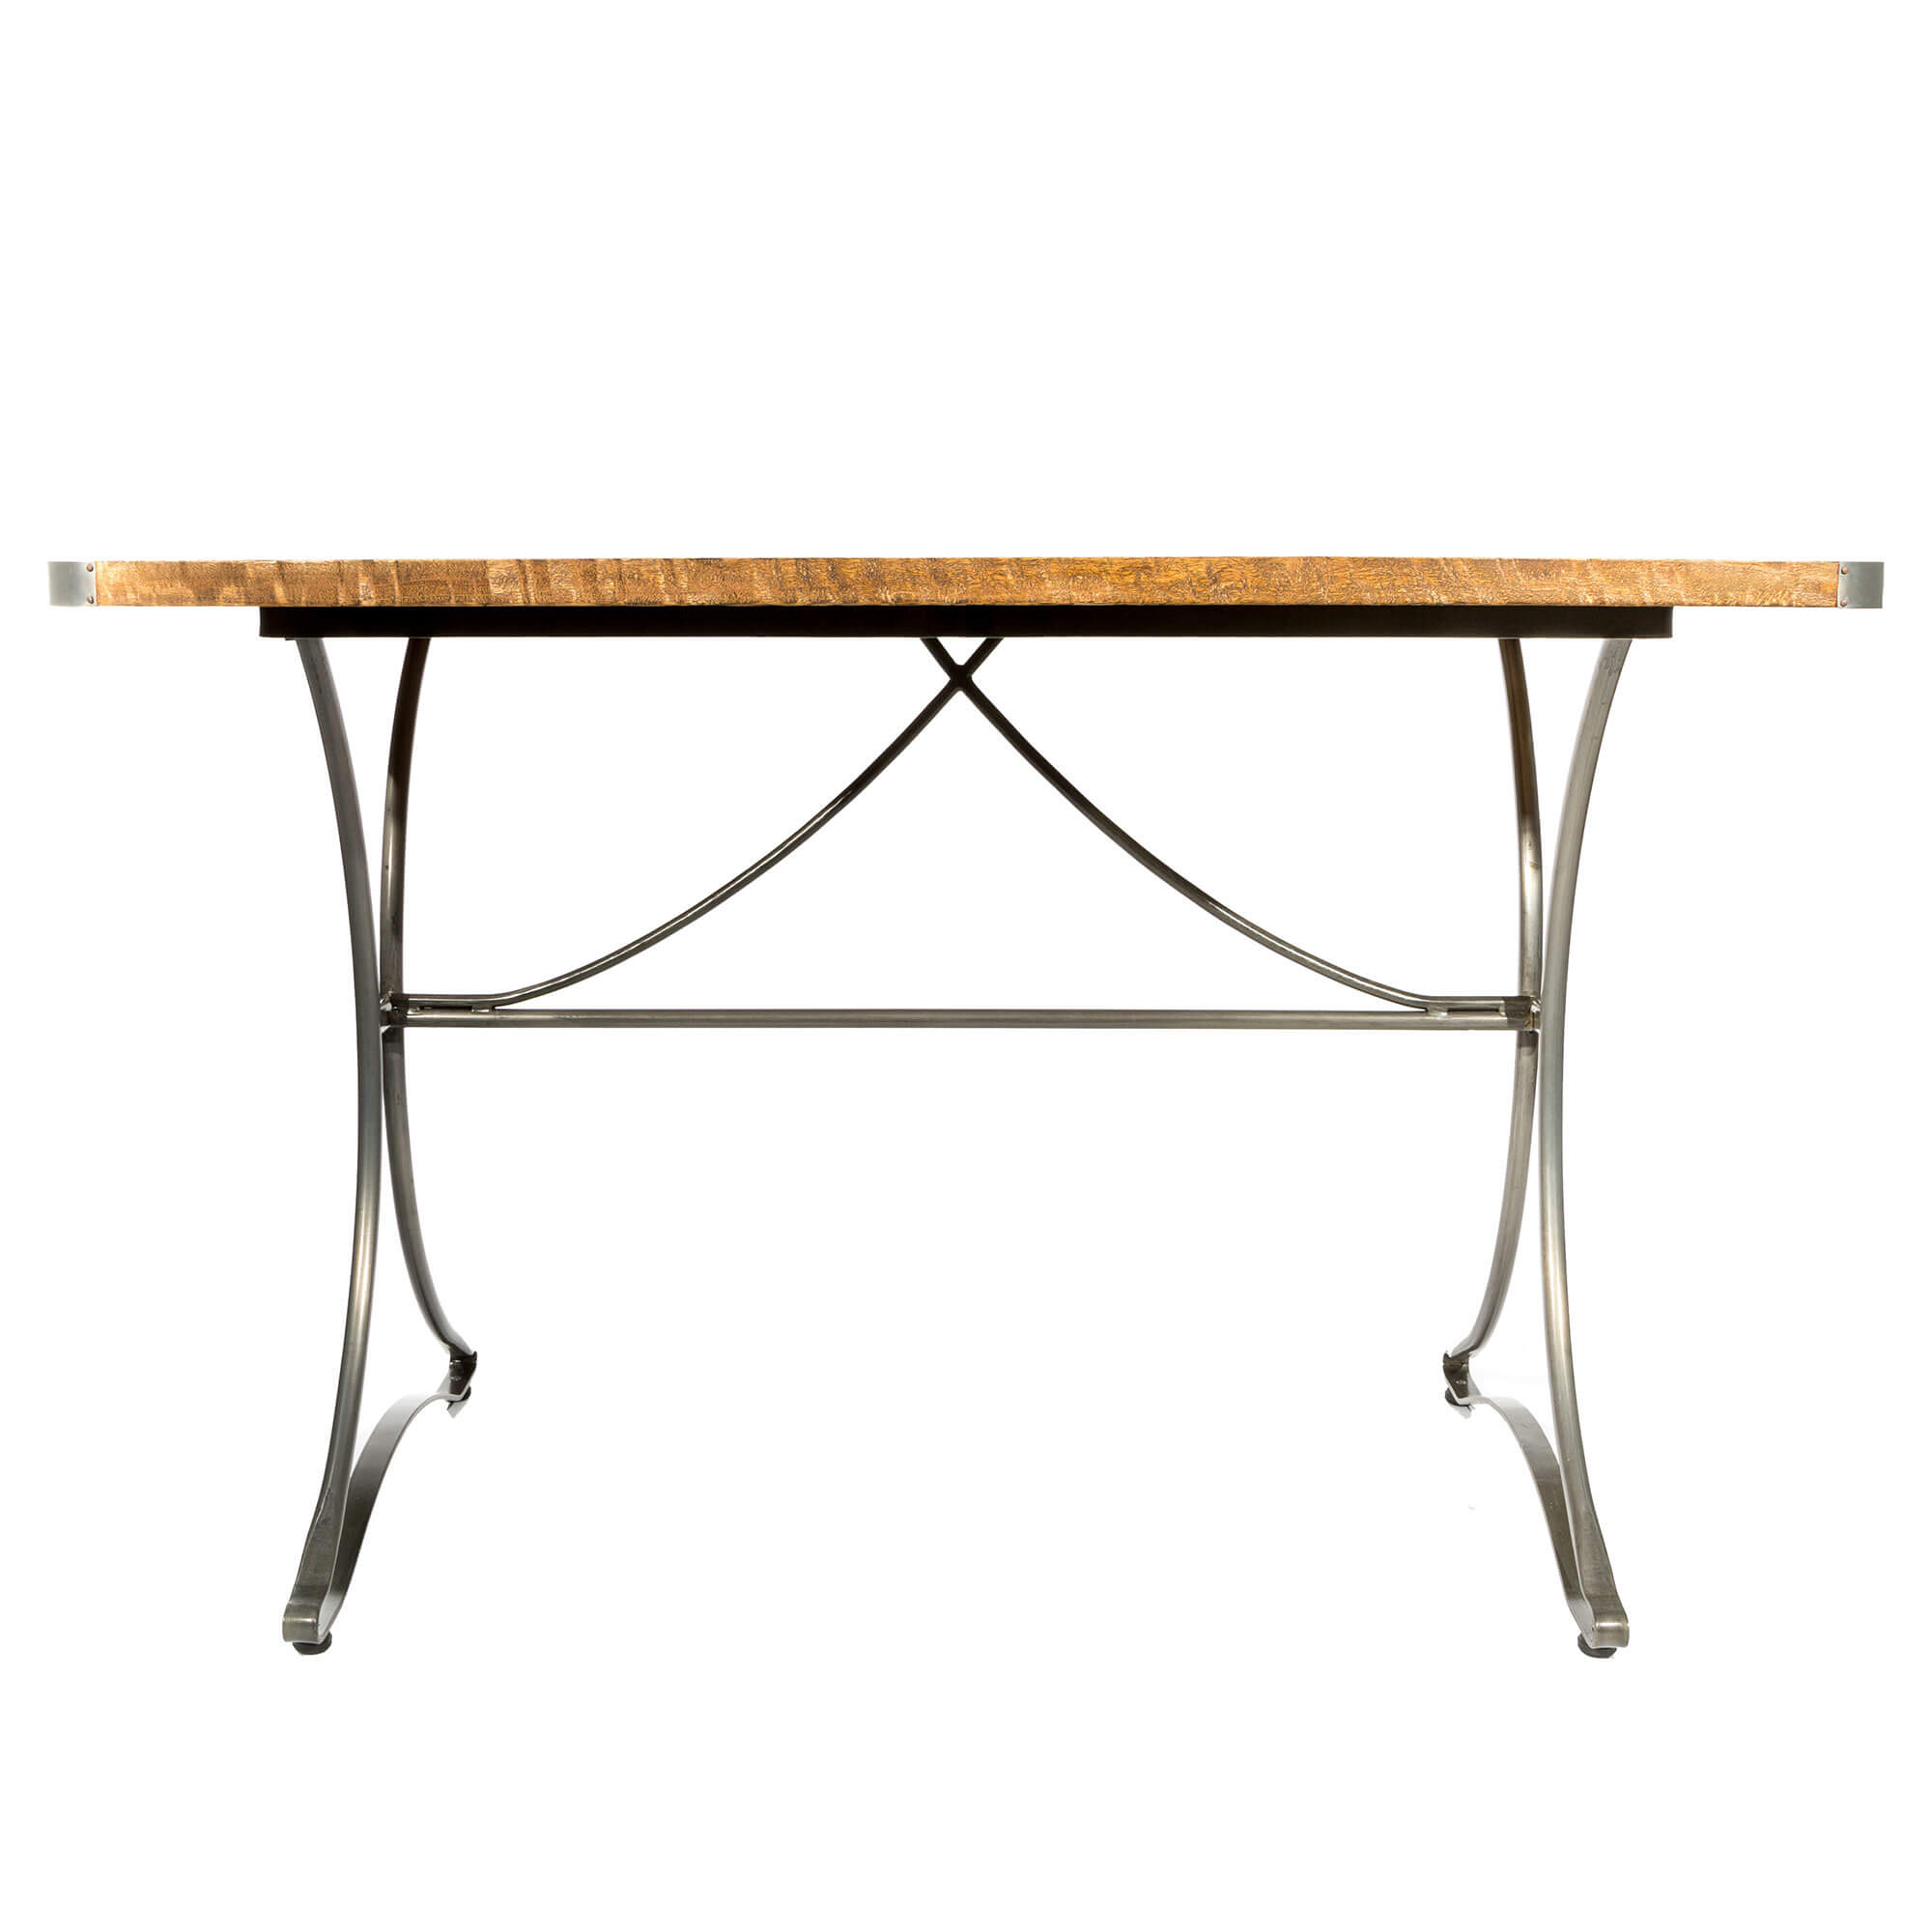 Urban Rectangular Cafe Table70X120 | Solid Wood |